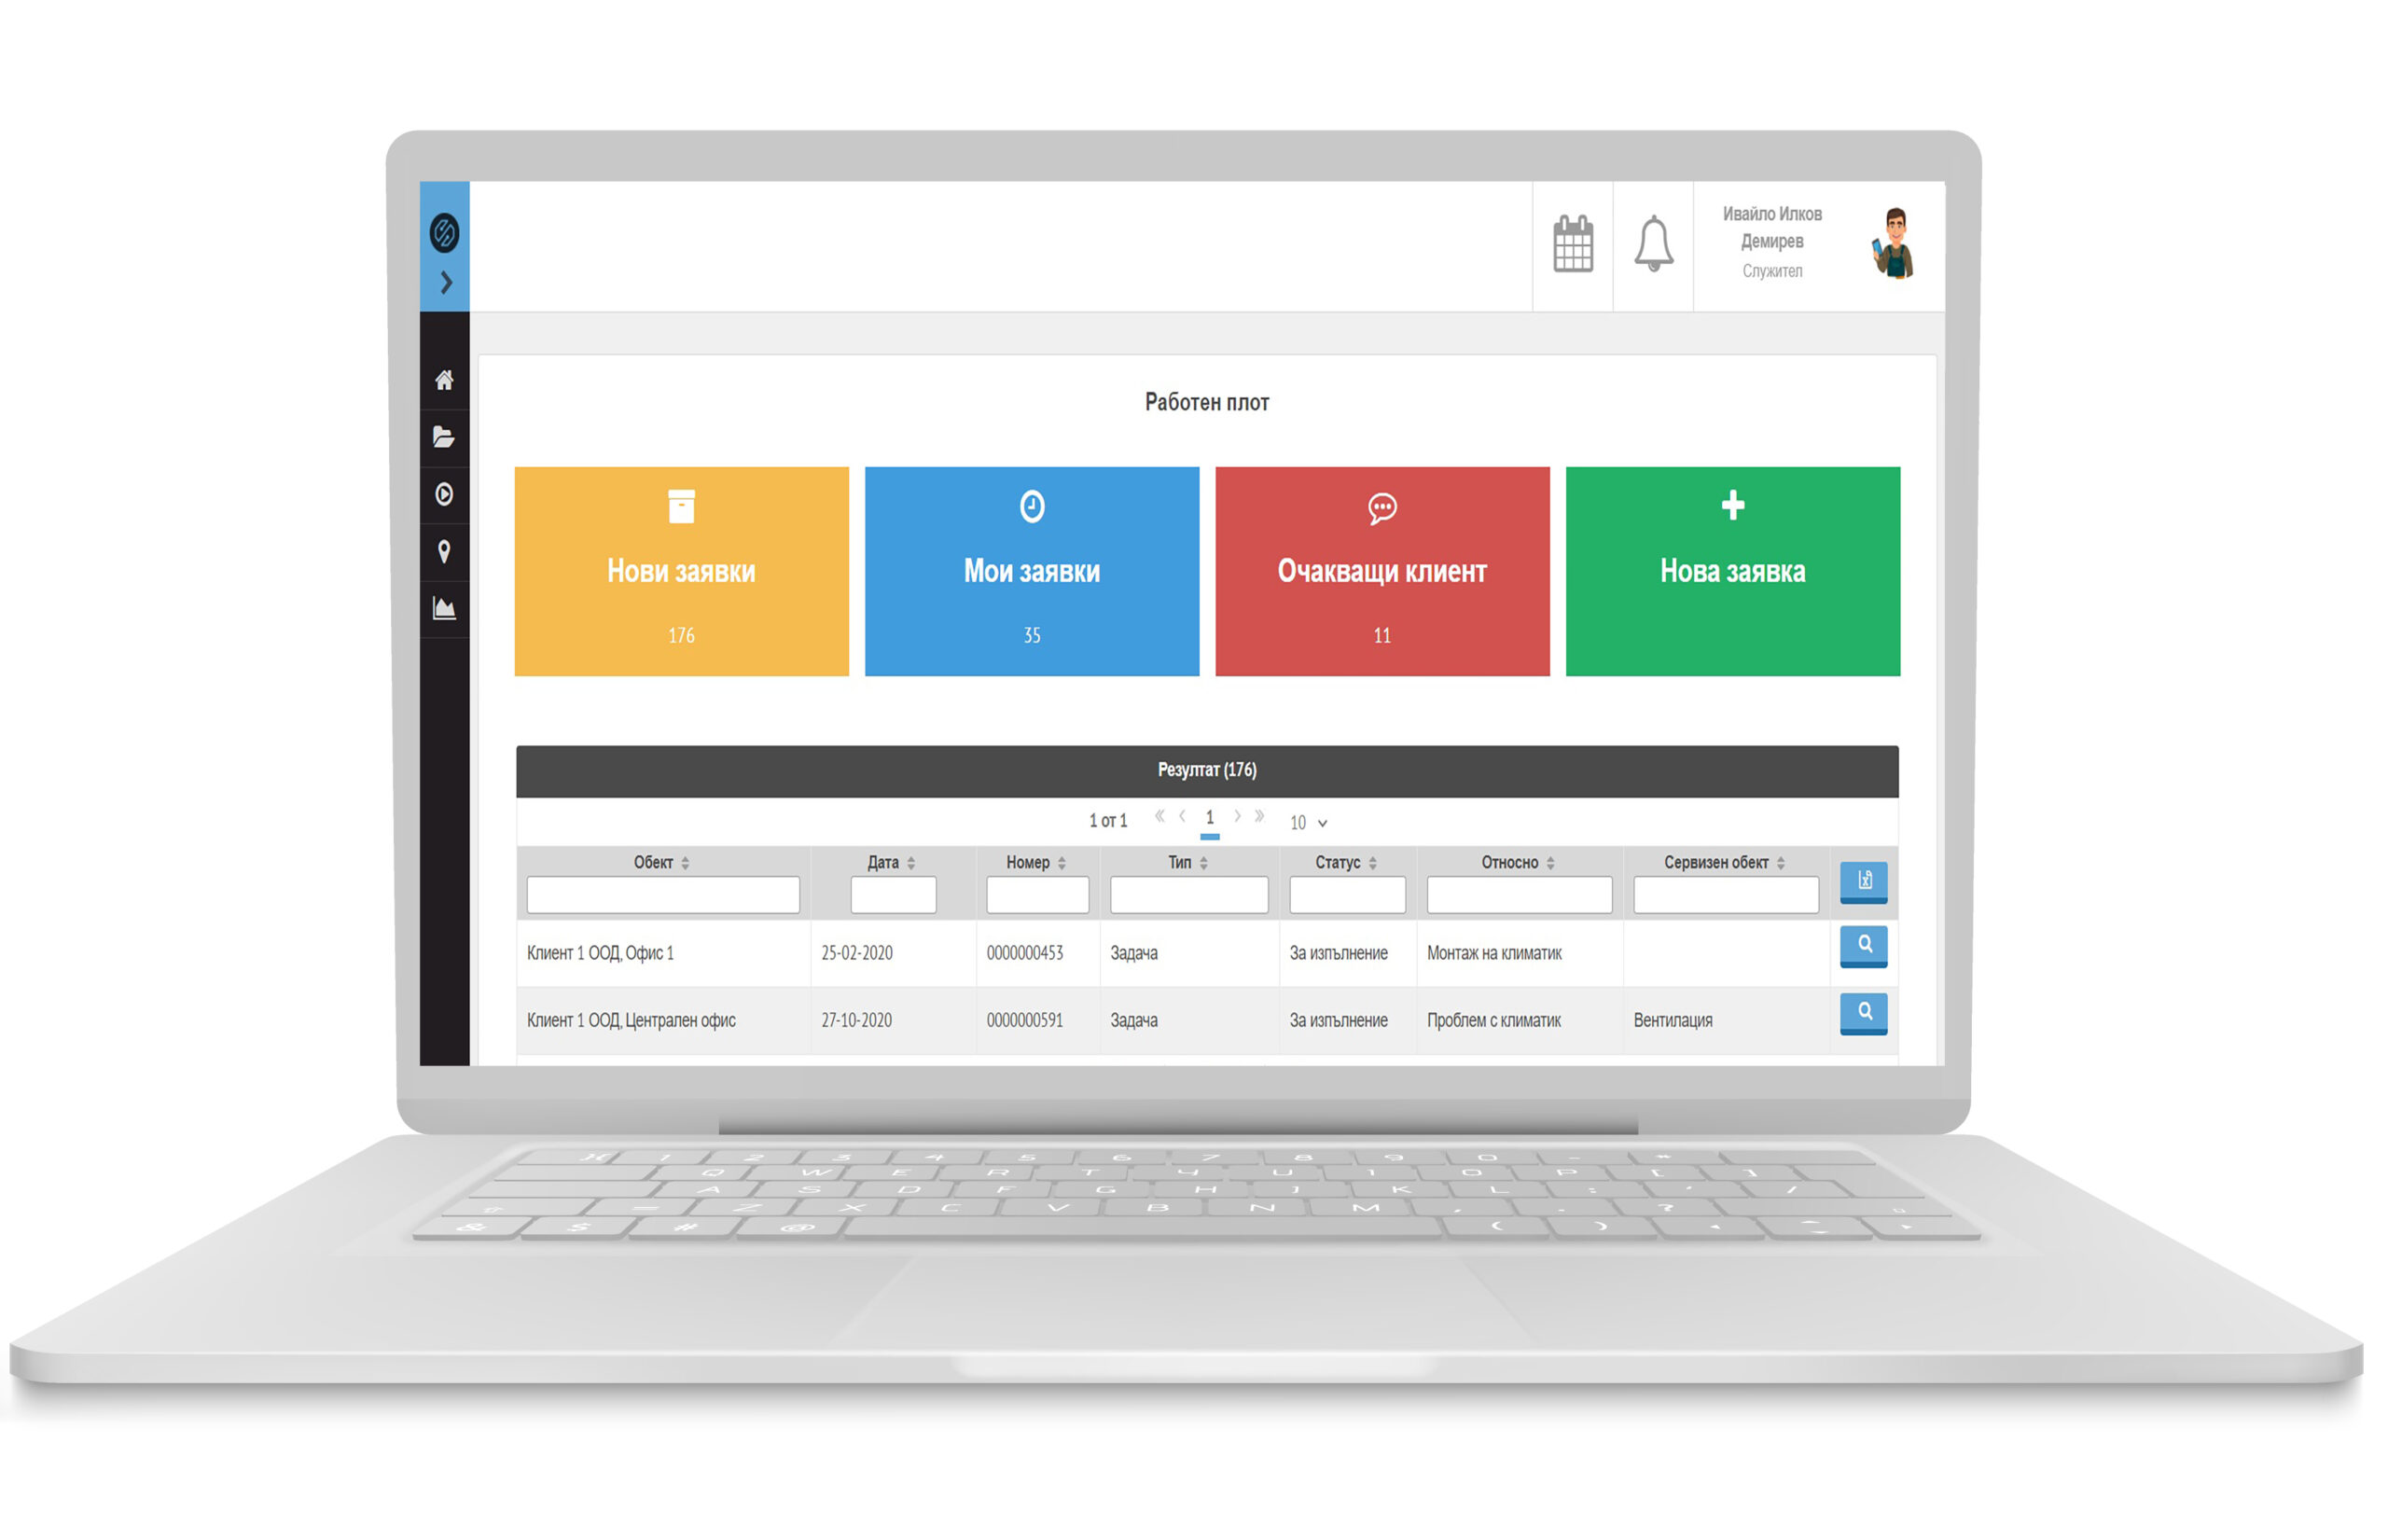 SBSDesk, Ticket System, Field Service, Task Managment, Time tracking